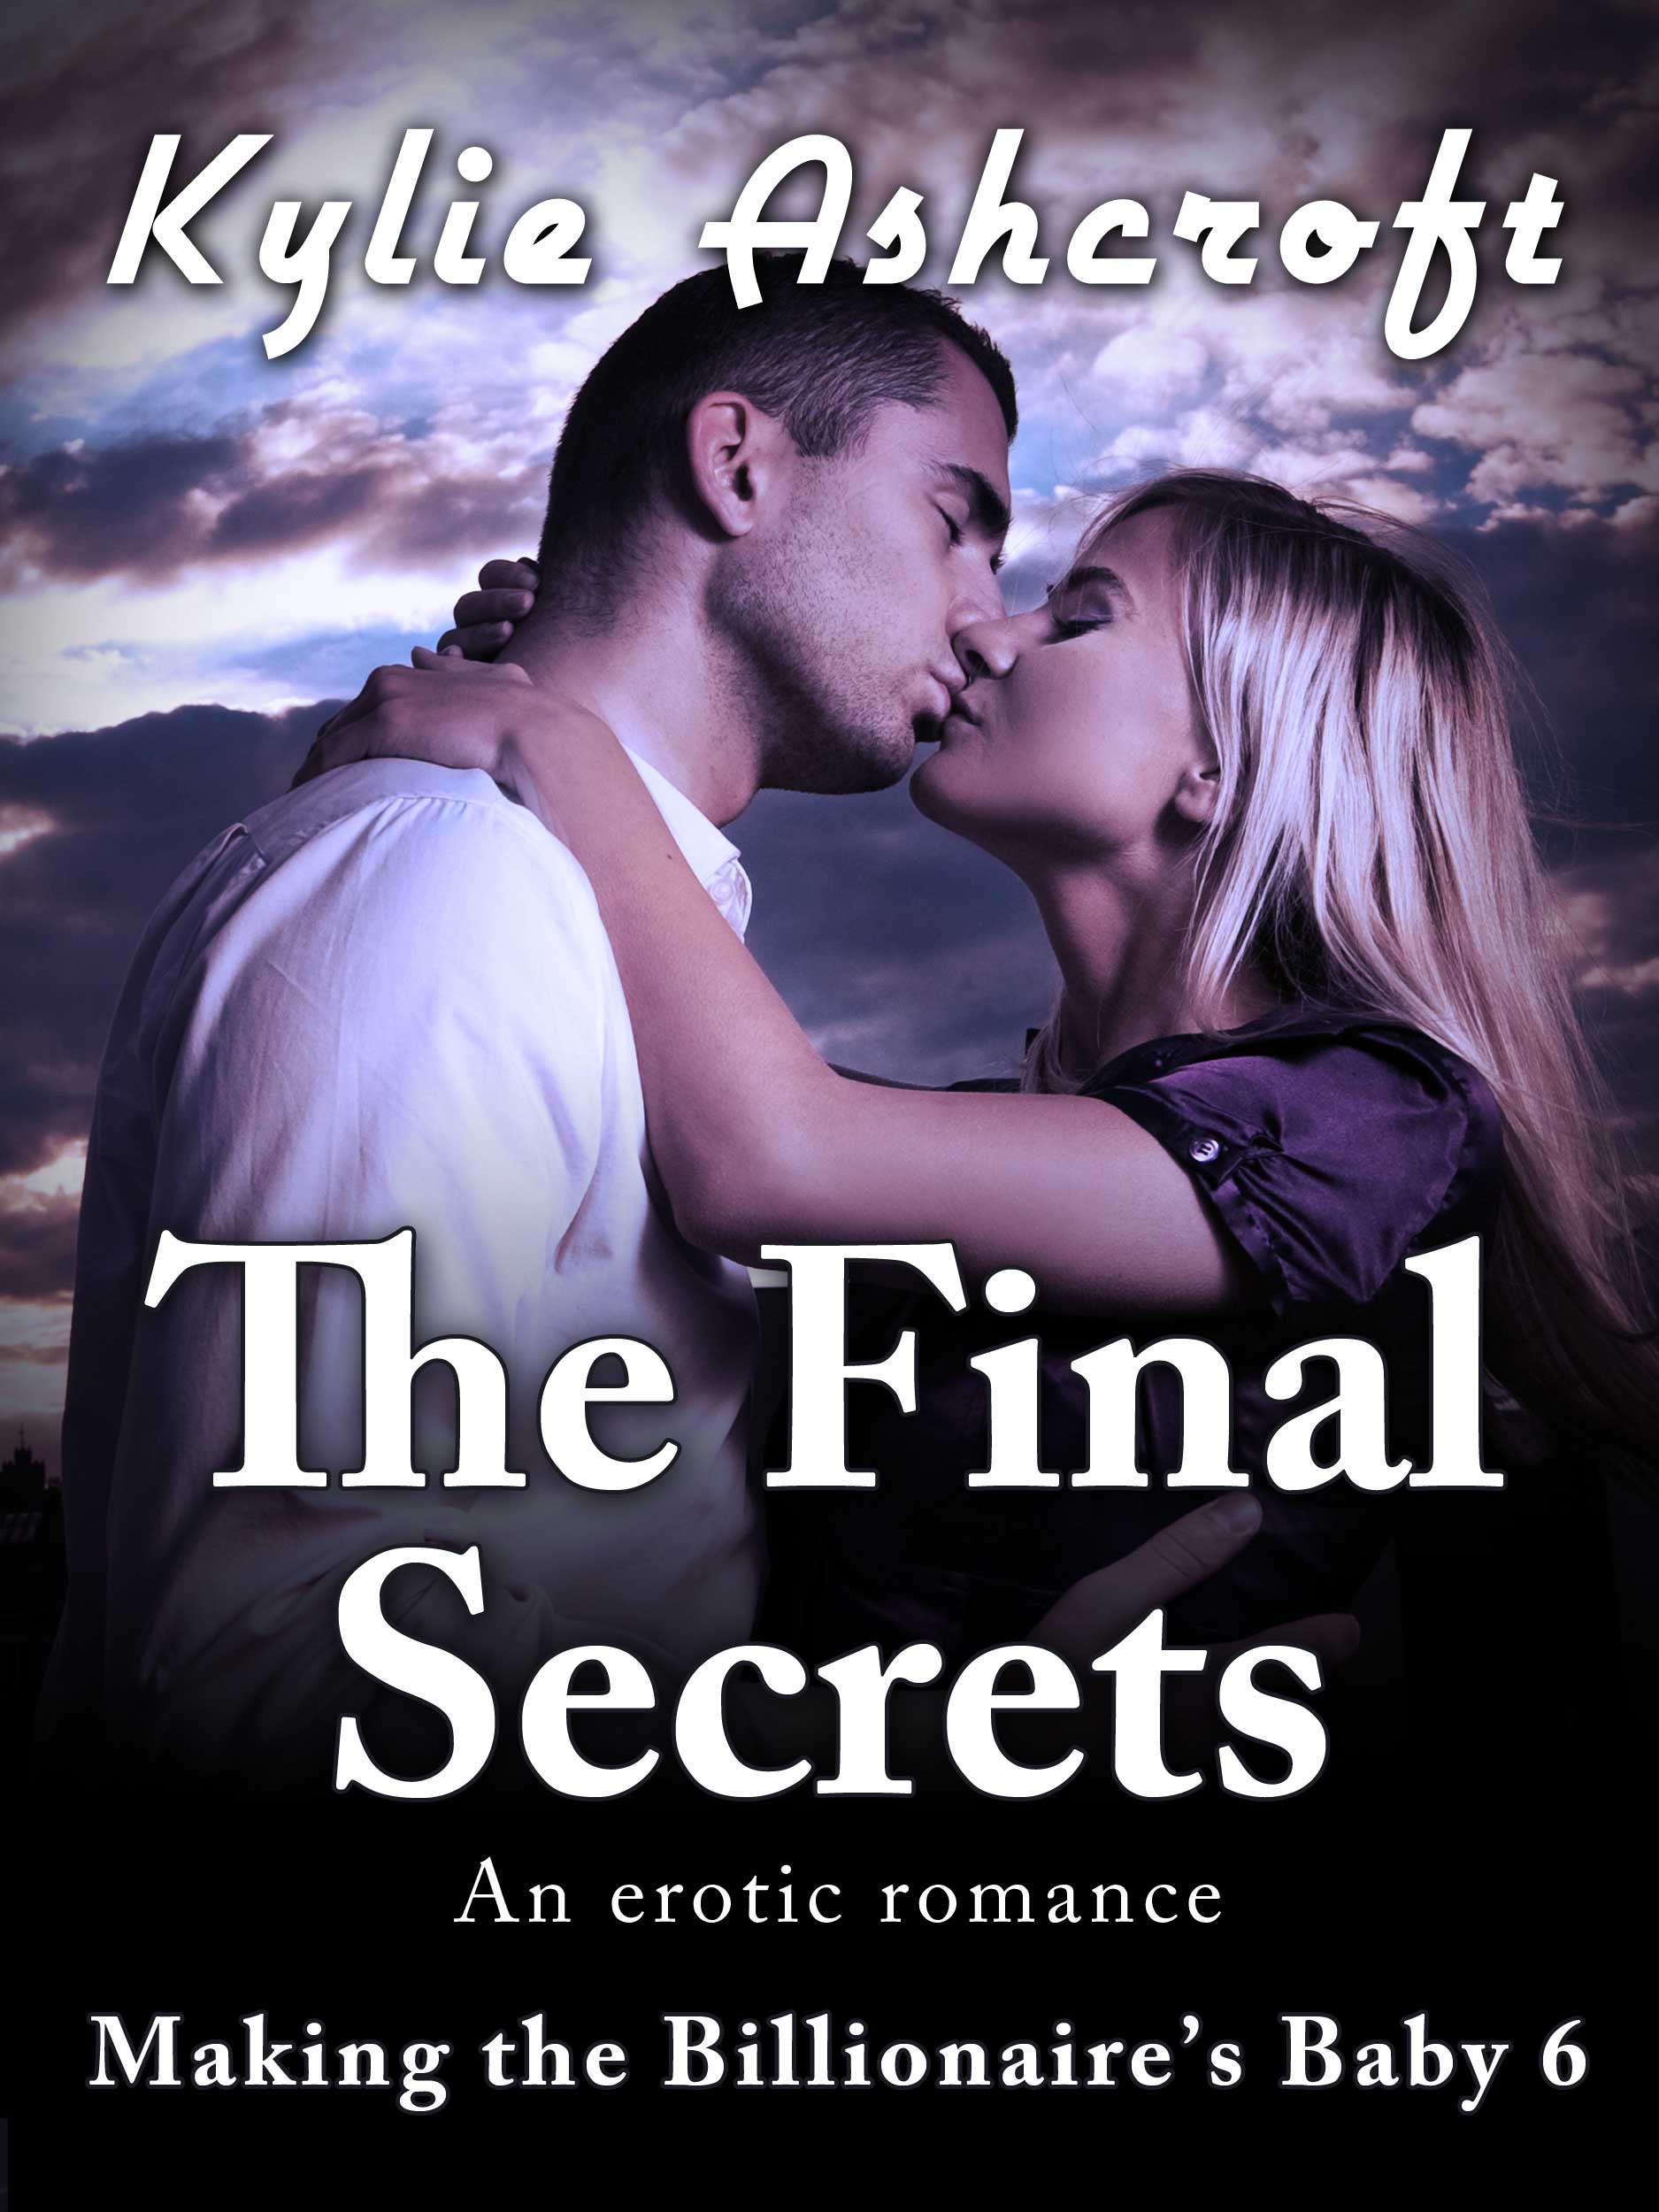 Kylie Ashcroft - The Final Secrets - Making the Billionaire's Baby 6